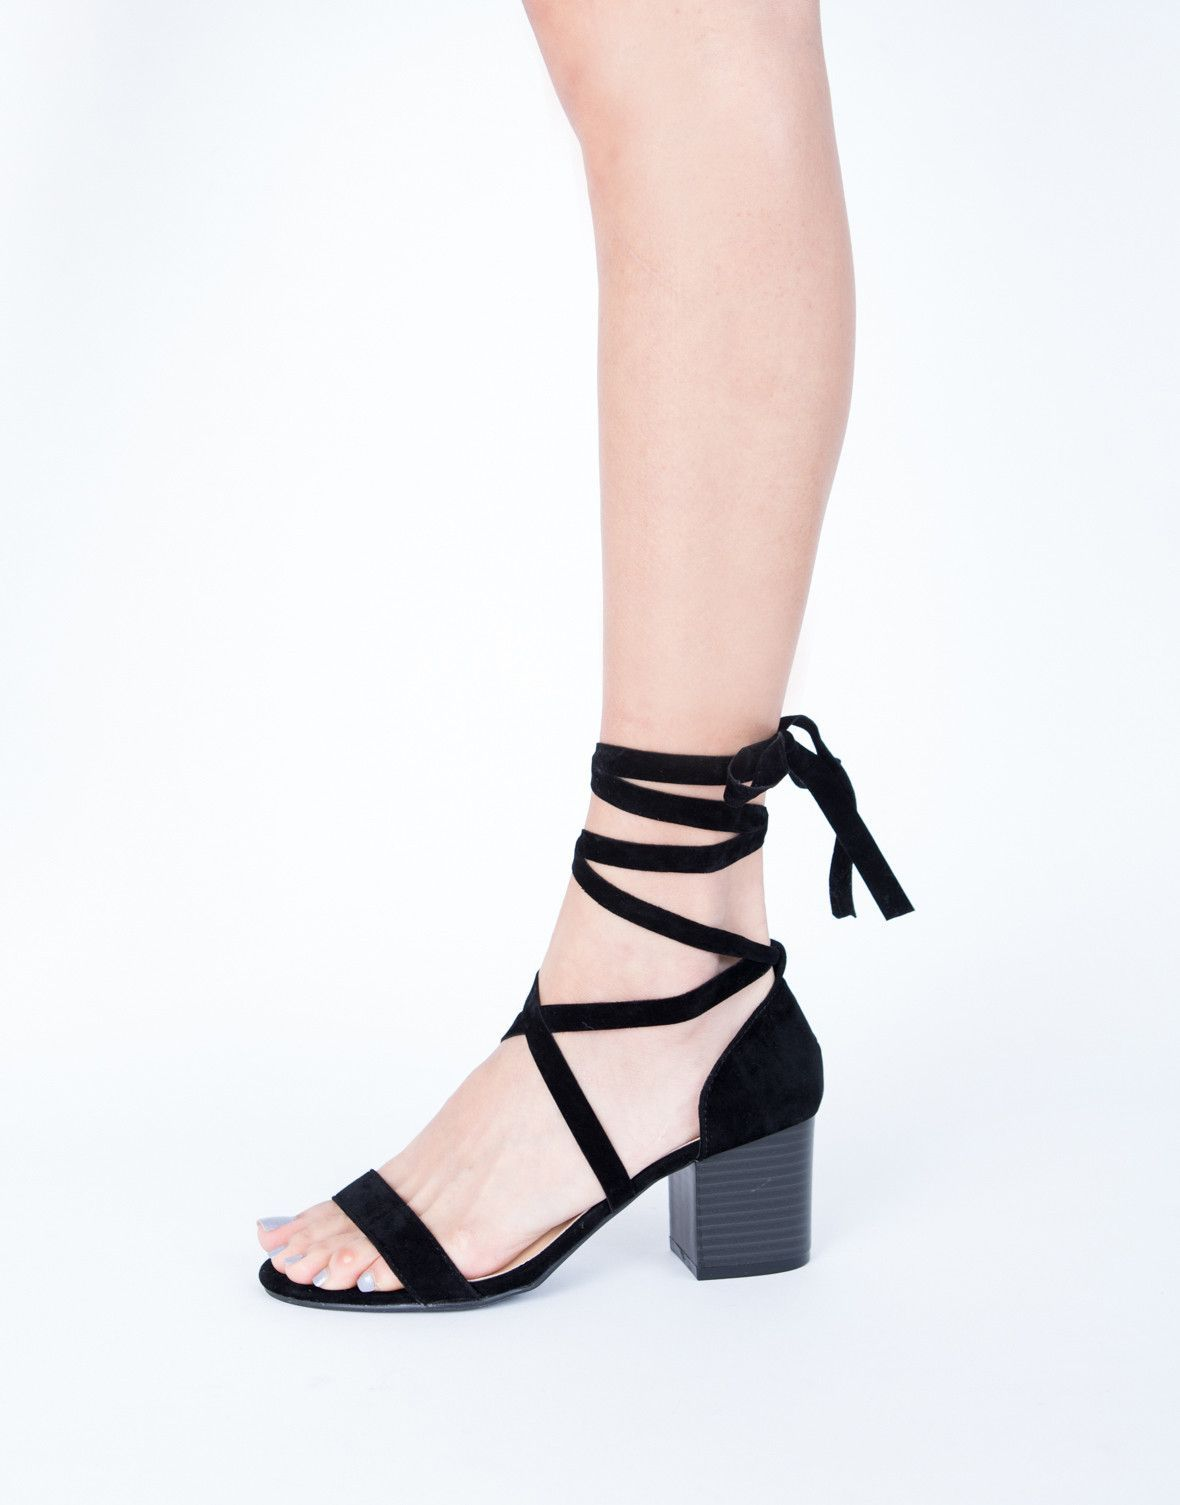 e28c8afaf943 Your new favorite pair of sandals are officially here. These Lace-Up Block  Heel